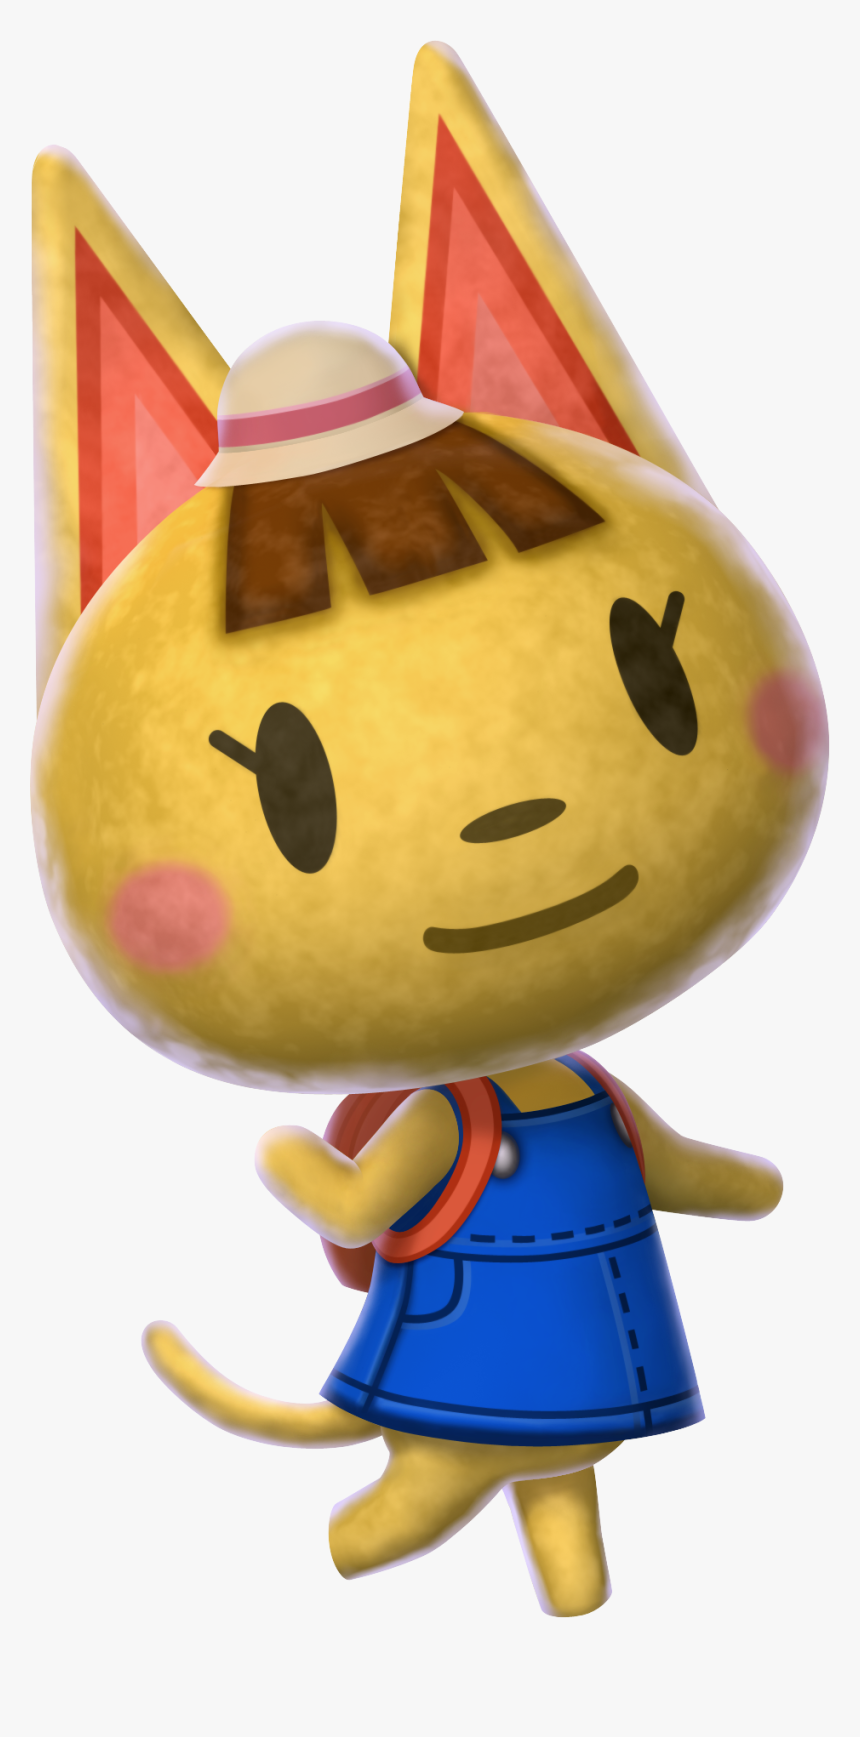 Katie From Animal Crossing Hd Png Download Kindpng